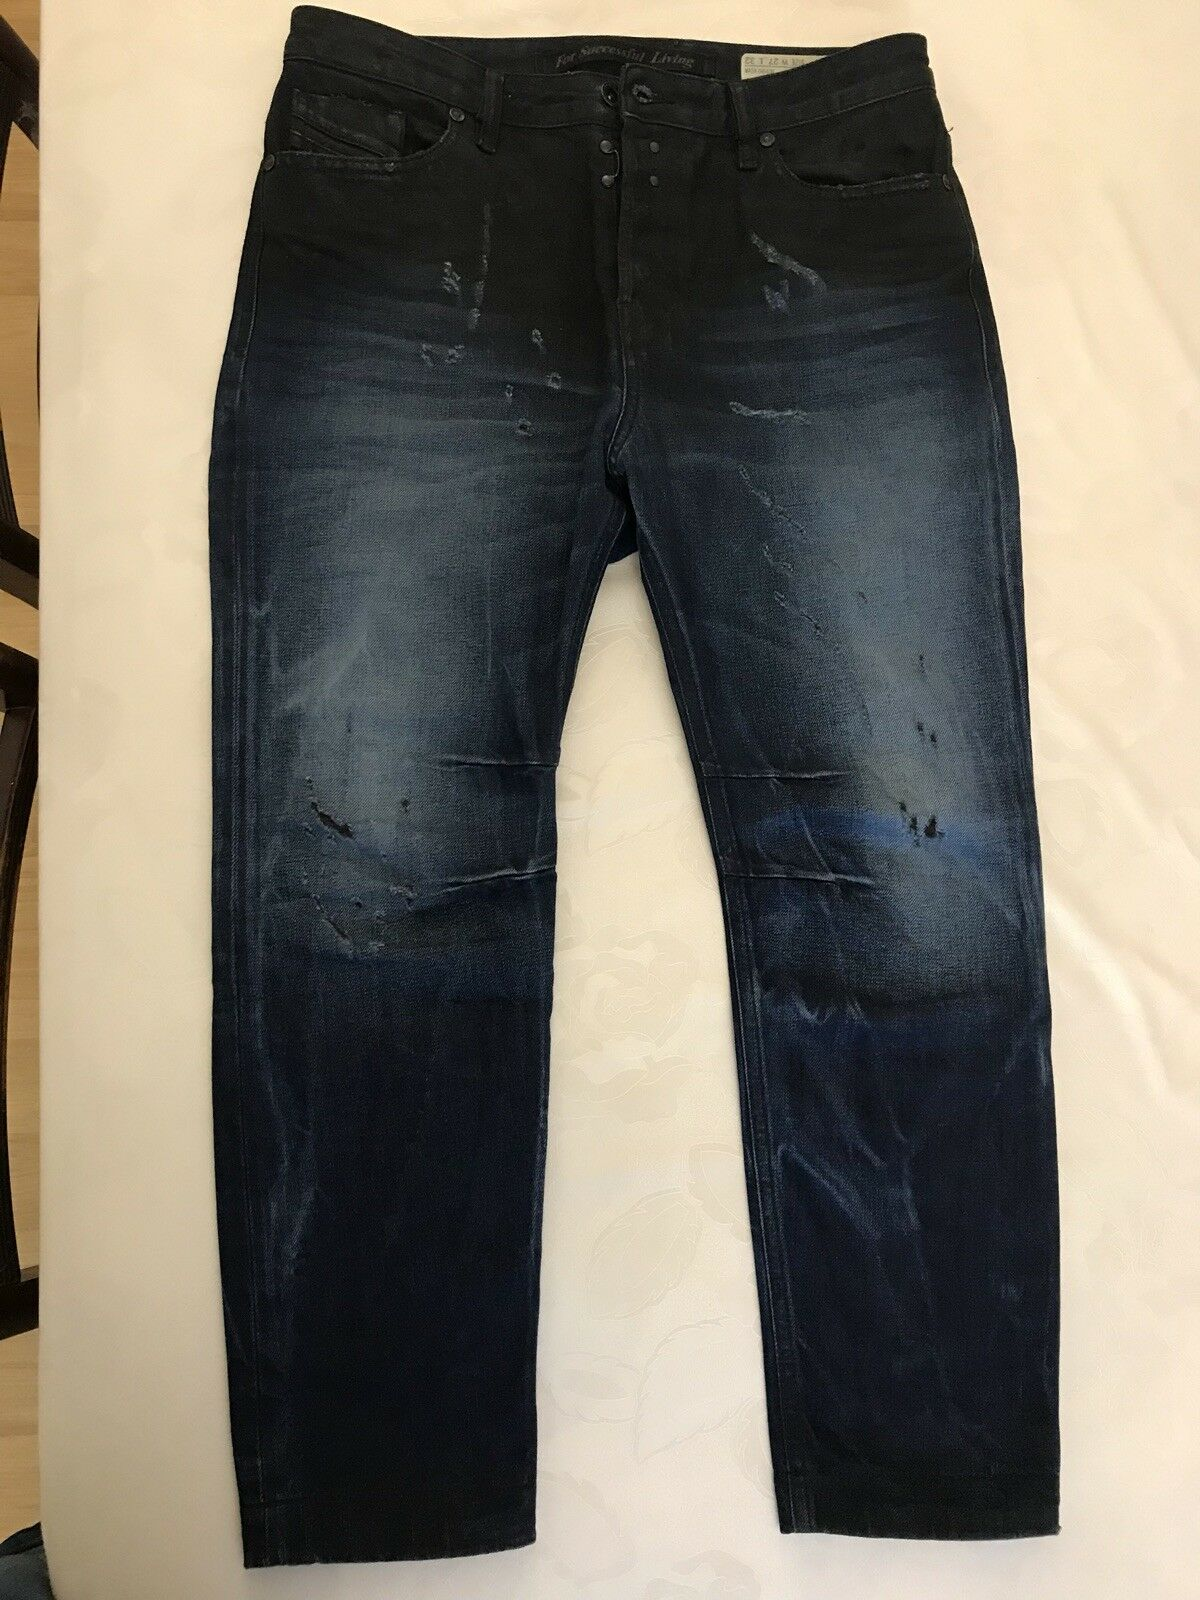 Diesel Eazee Woman Jeans W27 L32.Hardly used.Excellent condition.Worn once.